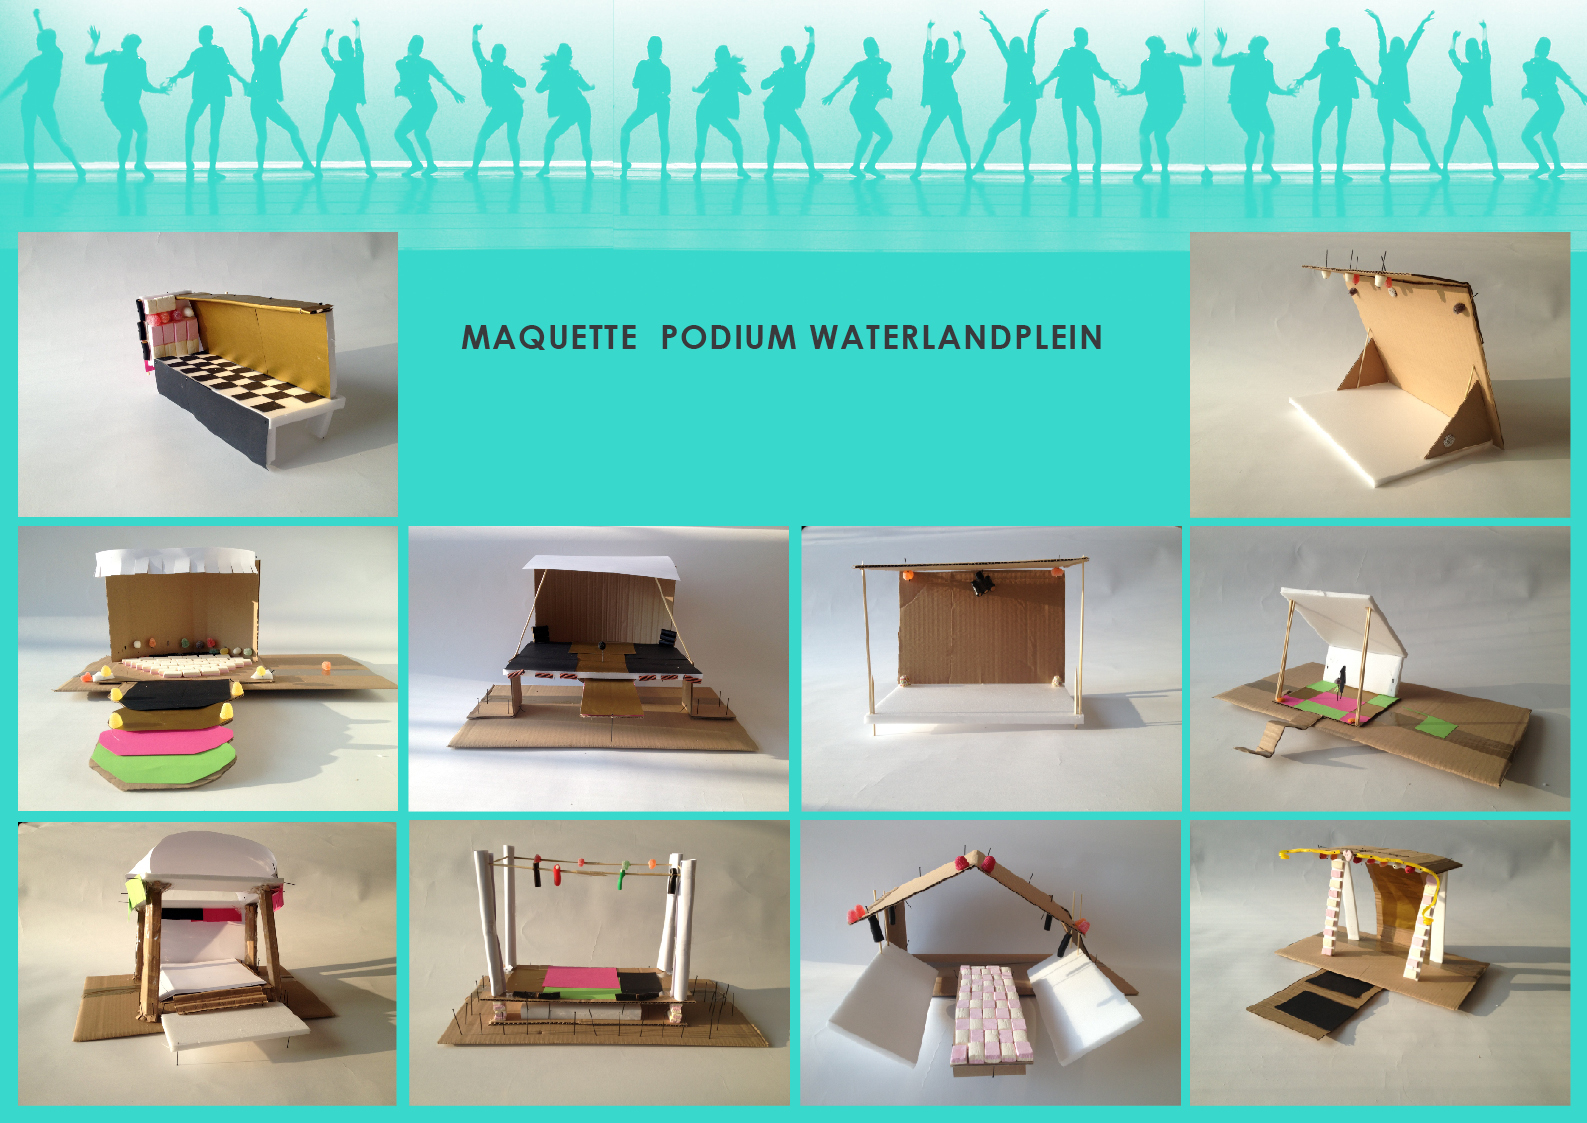 Maquettes Podium Waterlandplein